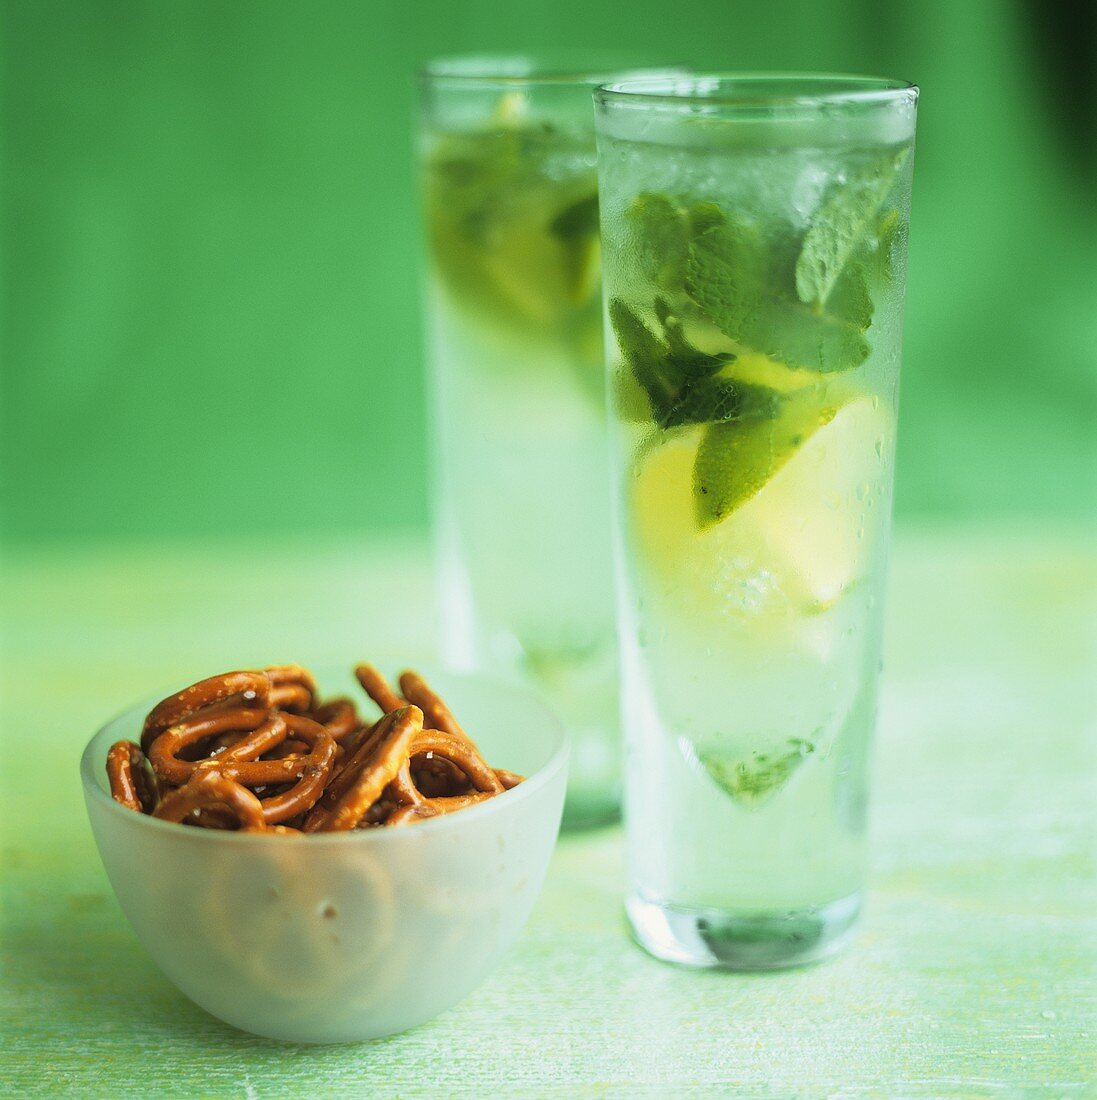 Two glasses of Mojito and salted pretzels